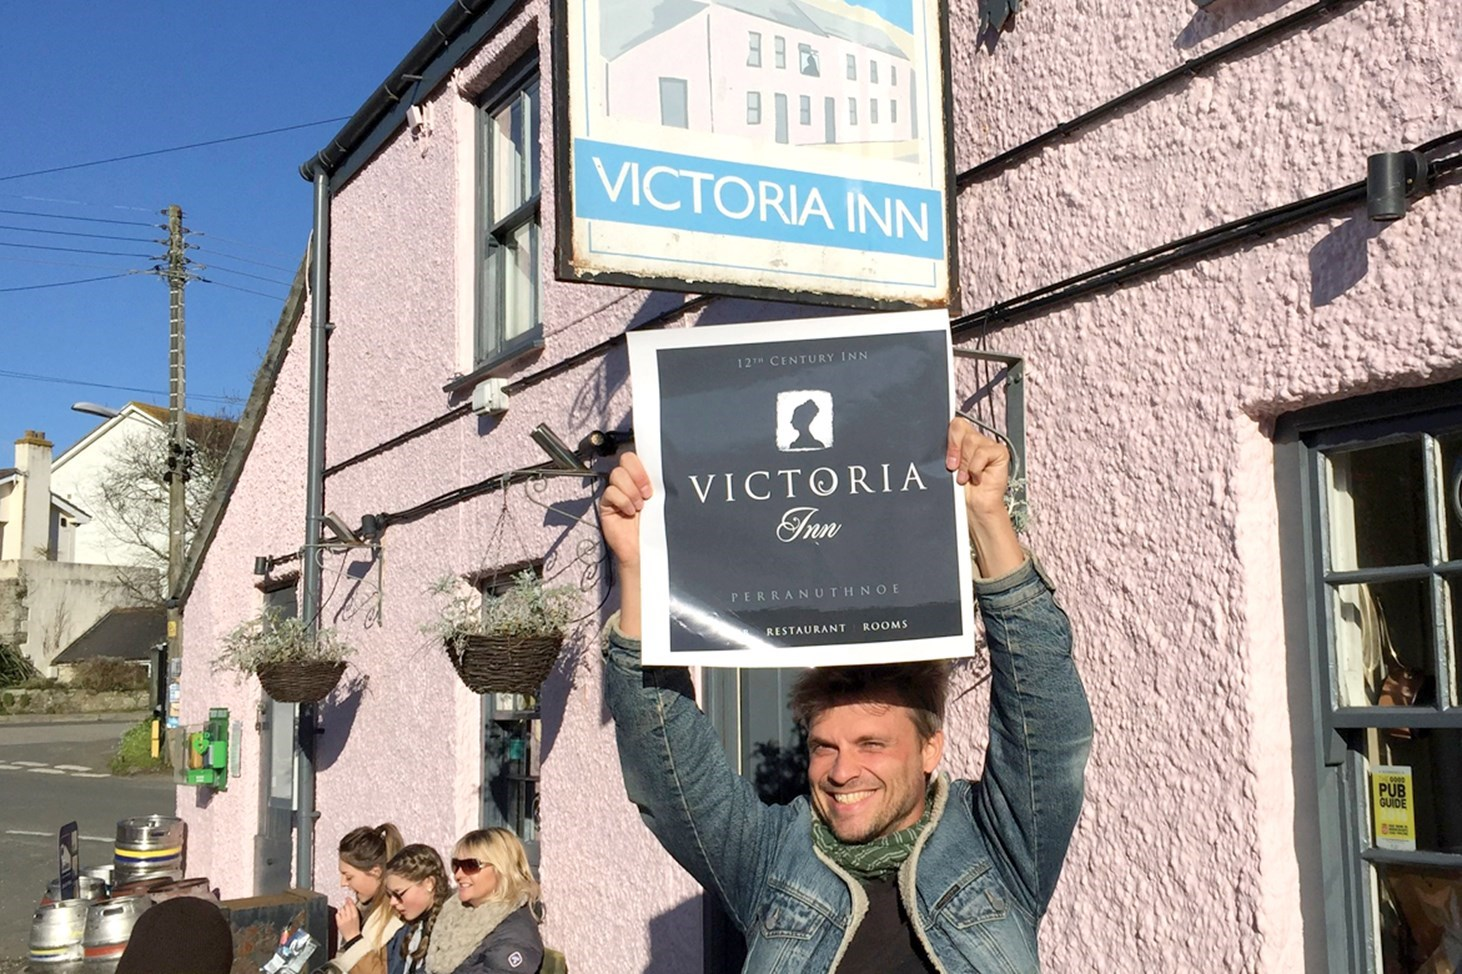 Victoria Inn, Gastro pub in Perranuthnoe, Cornwall,  showing old and new signs with branding by Design79.